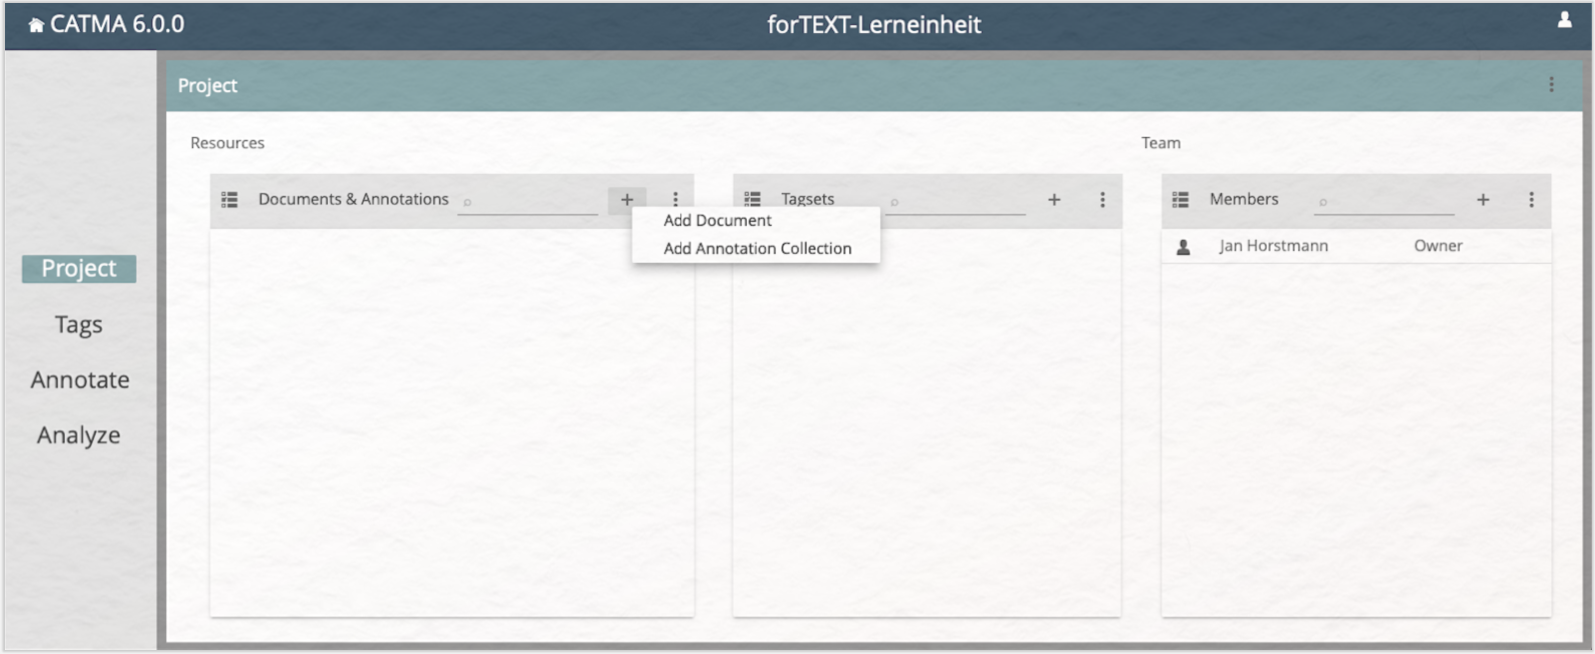 Lerneinheit Manuelle Annotation mit CATMA Project Module and Add Document